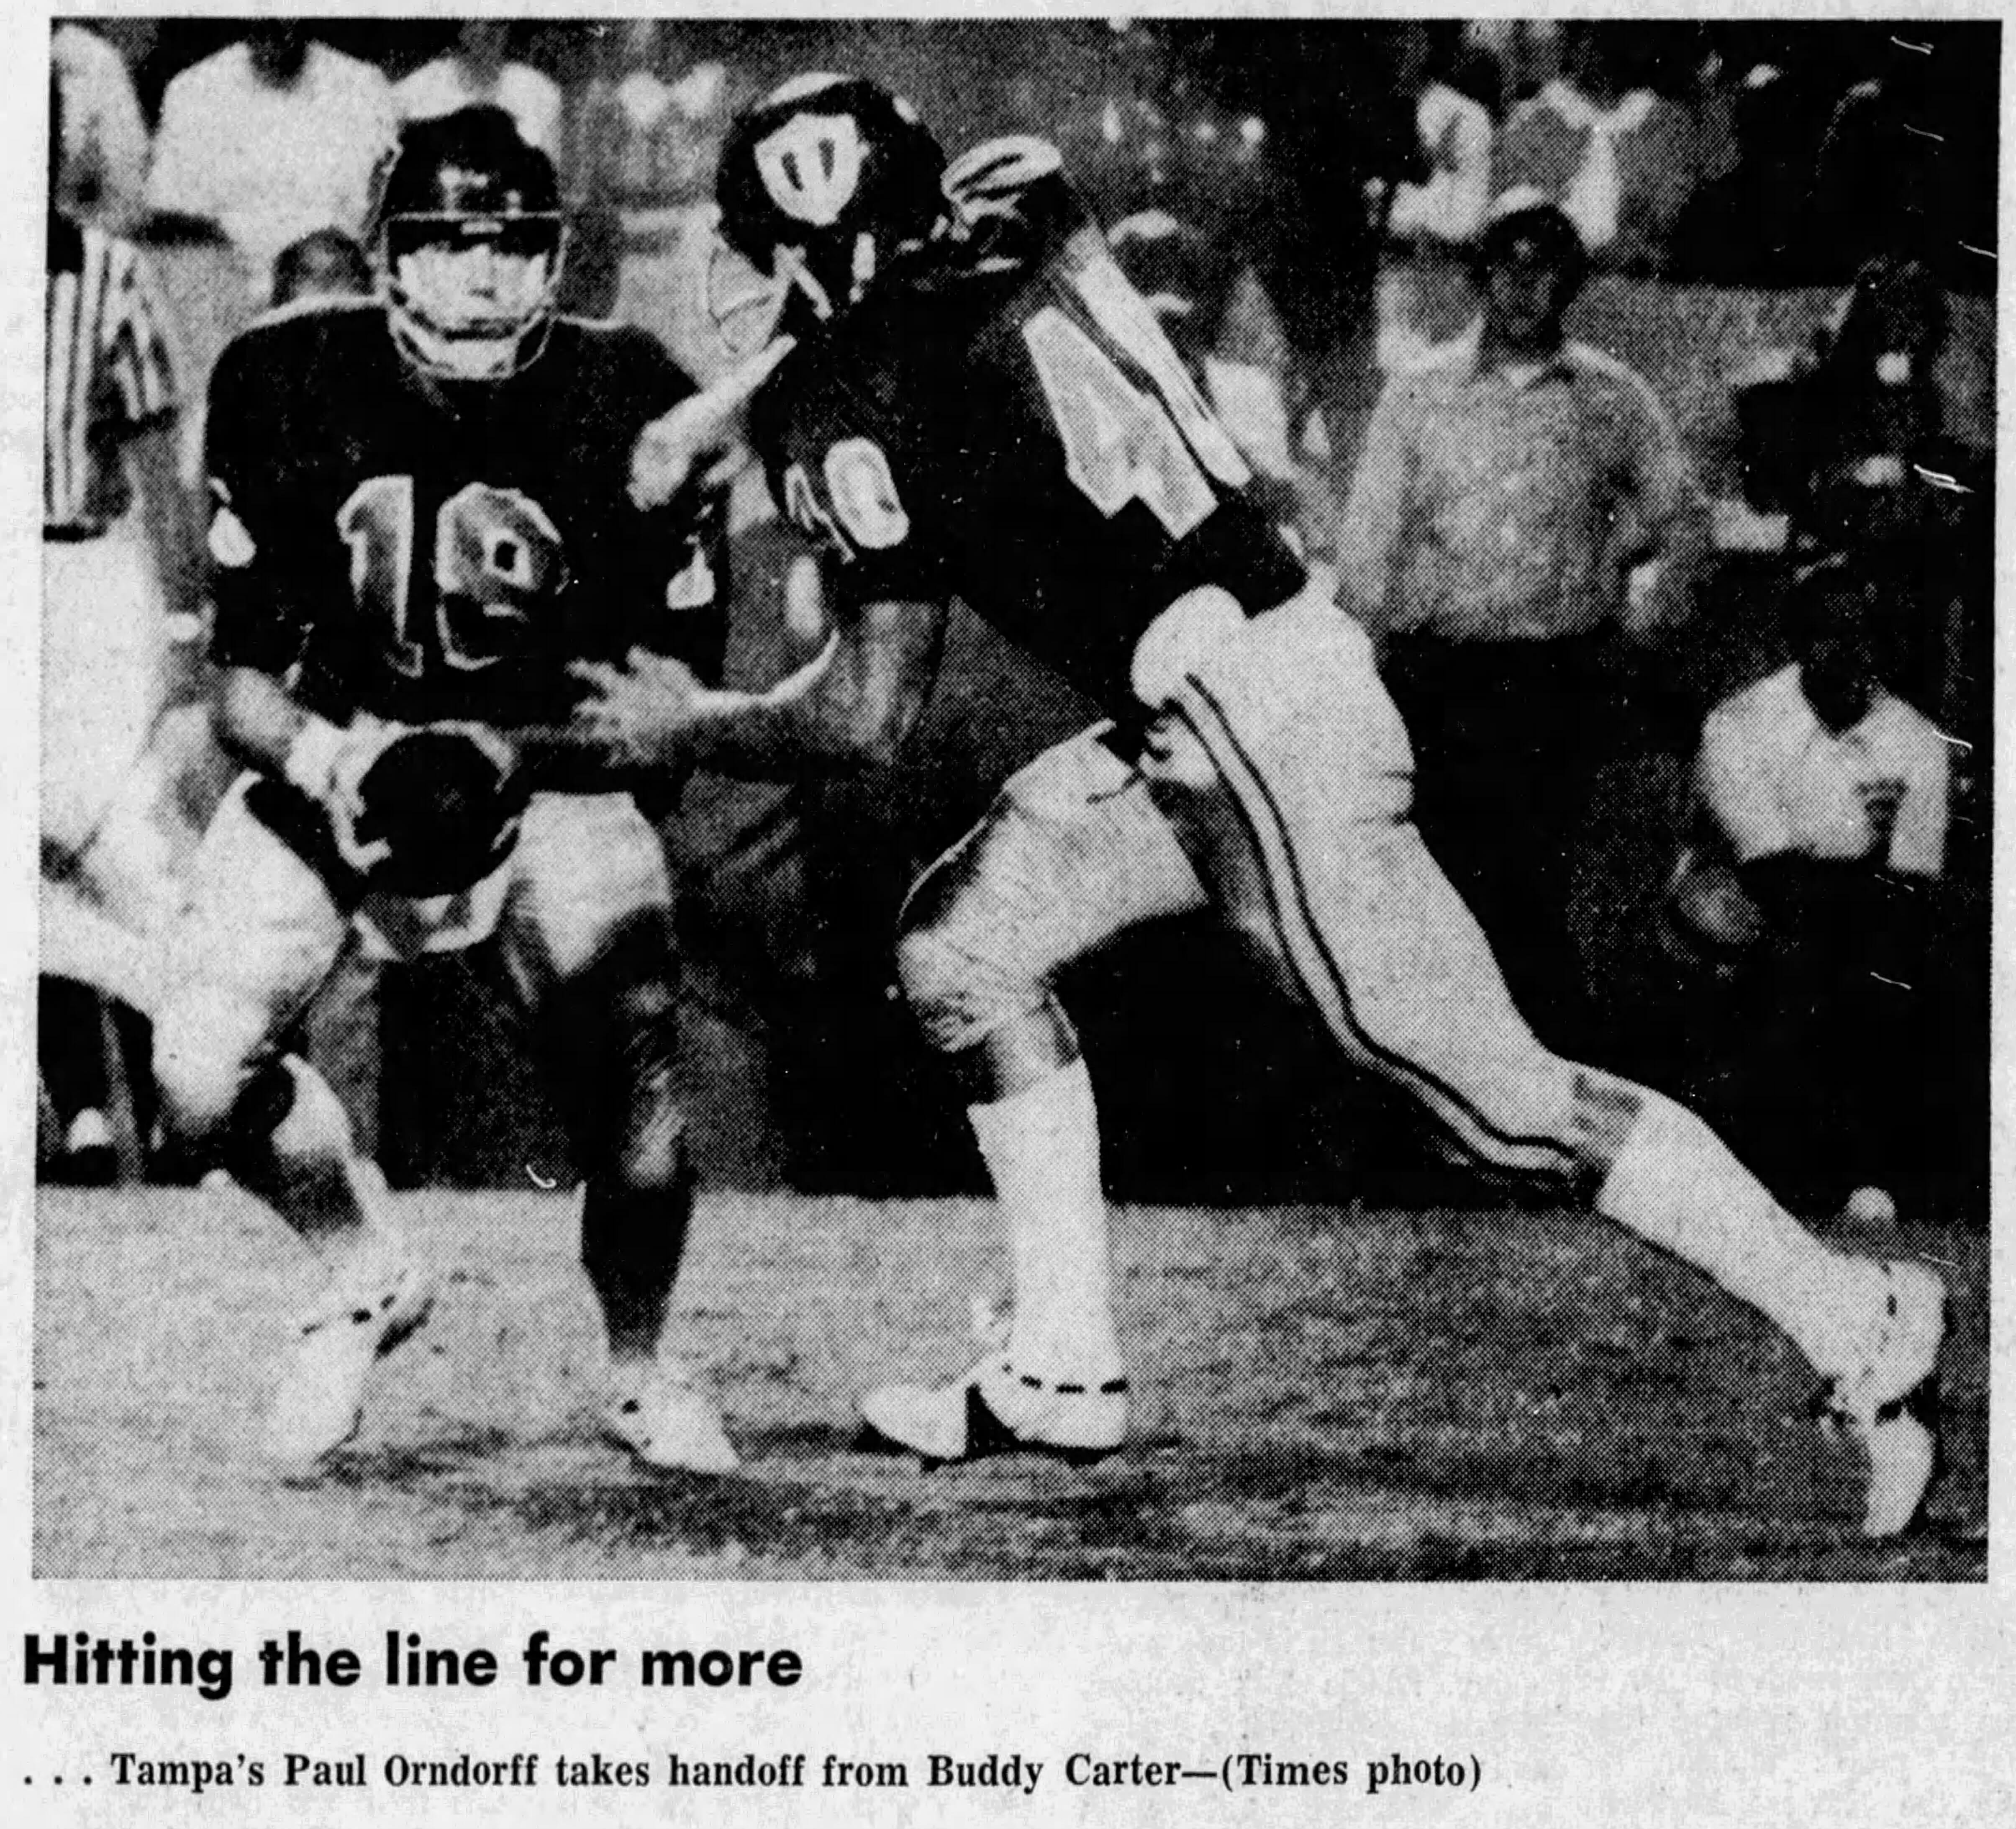 Paul Orndorff goes for the handoff while playing football for the University of Tampa